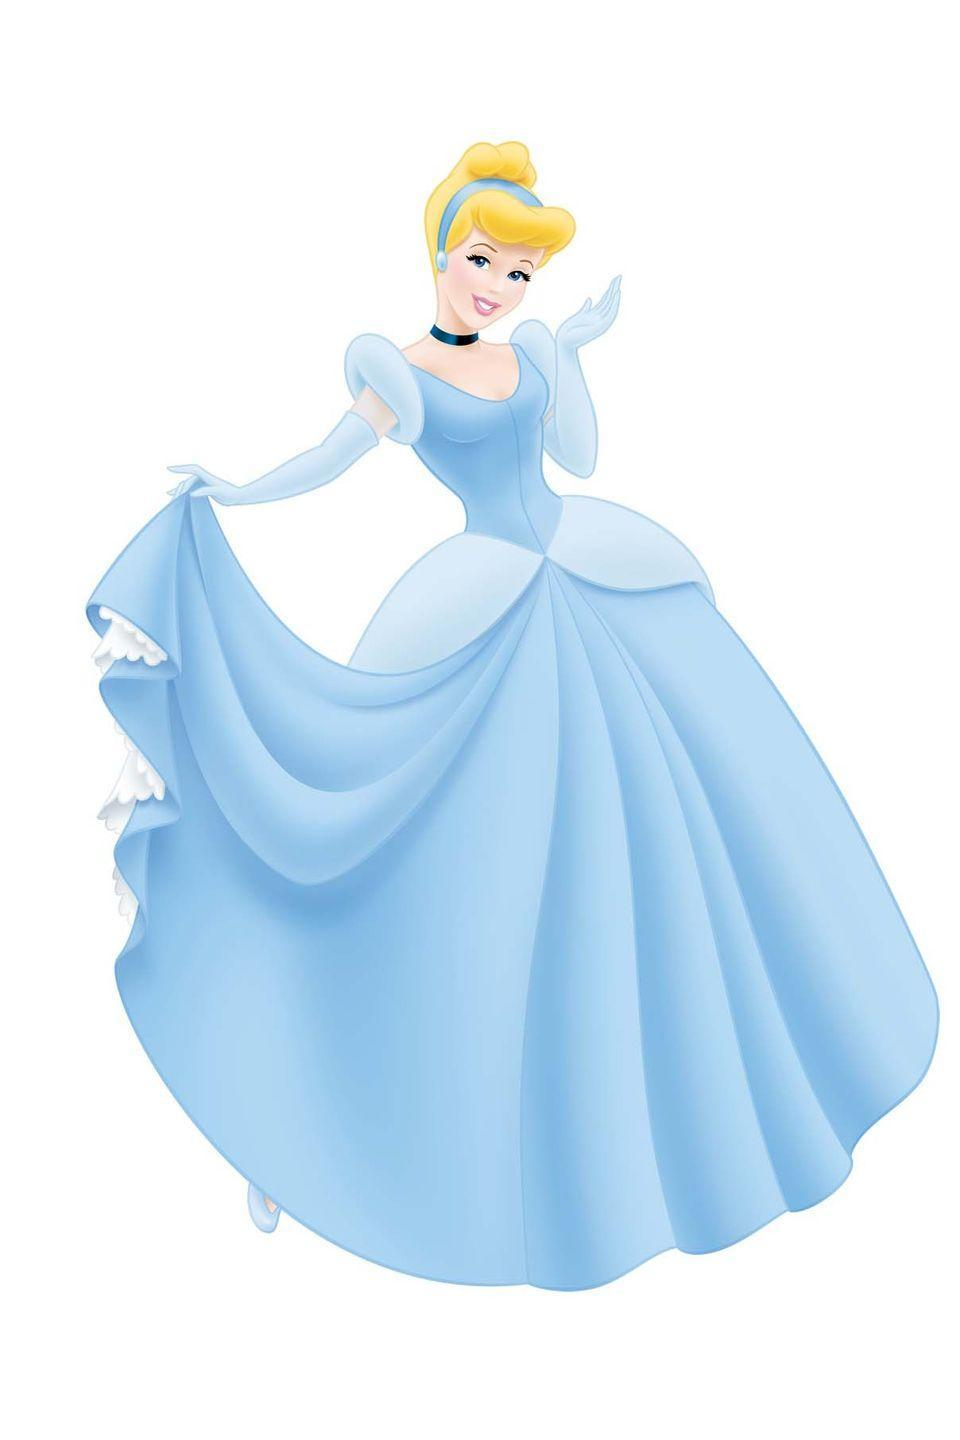 <p>Cinderella made her debut in Disney's 1950 film, wearing a light blue gown with a full skirt.</p>